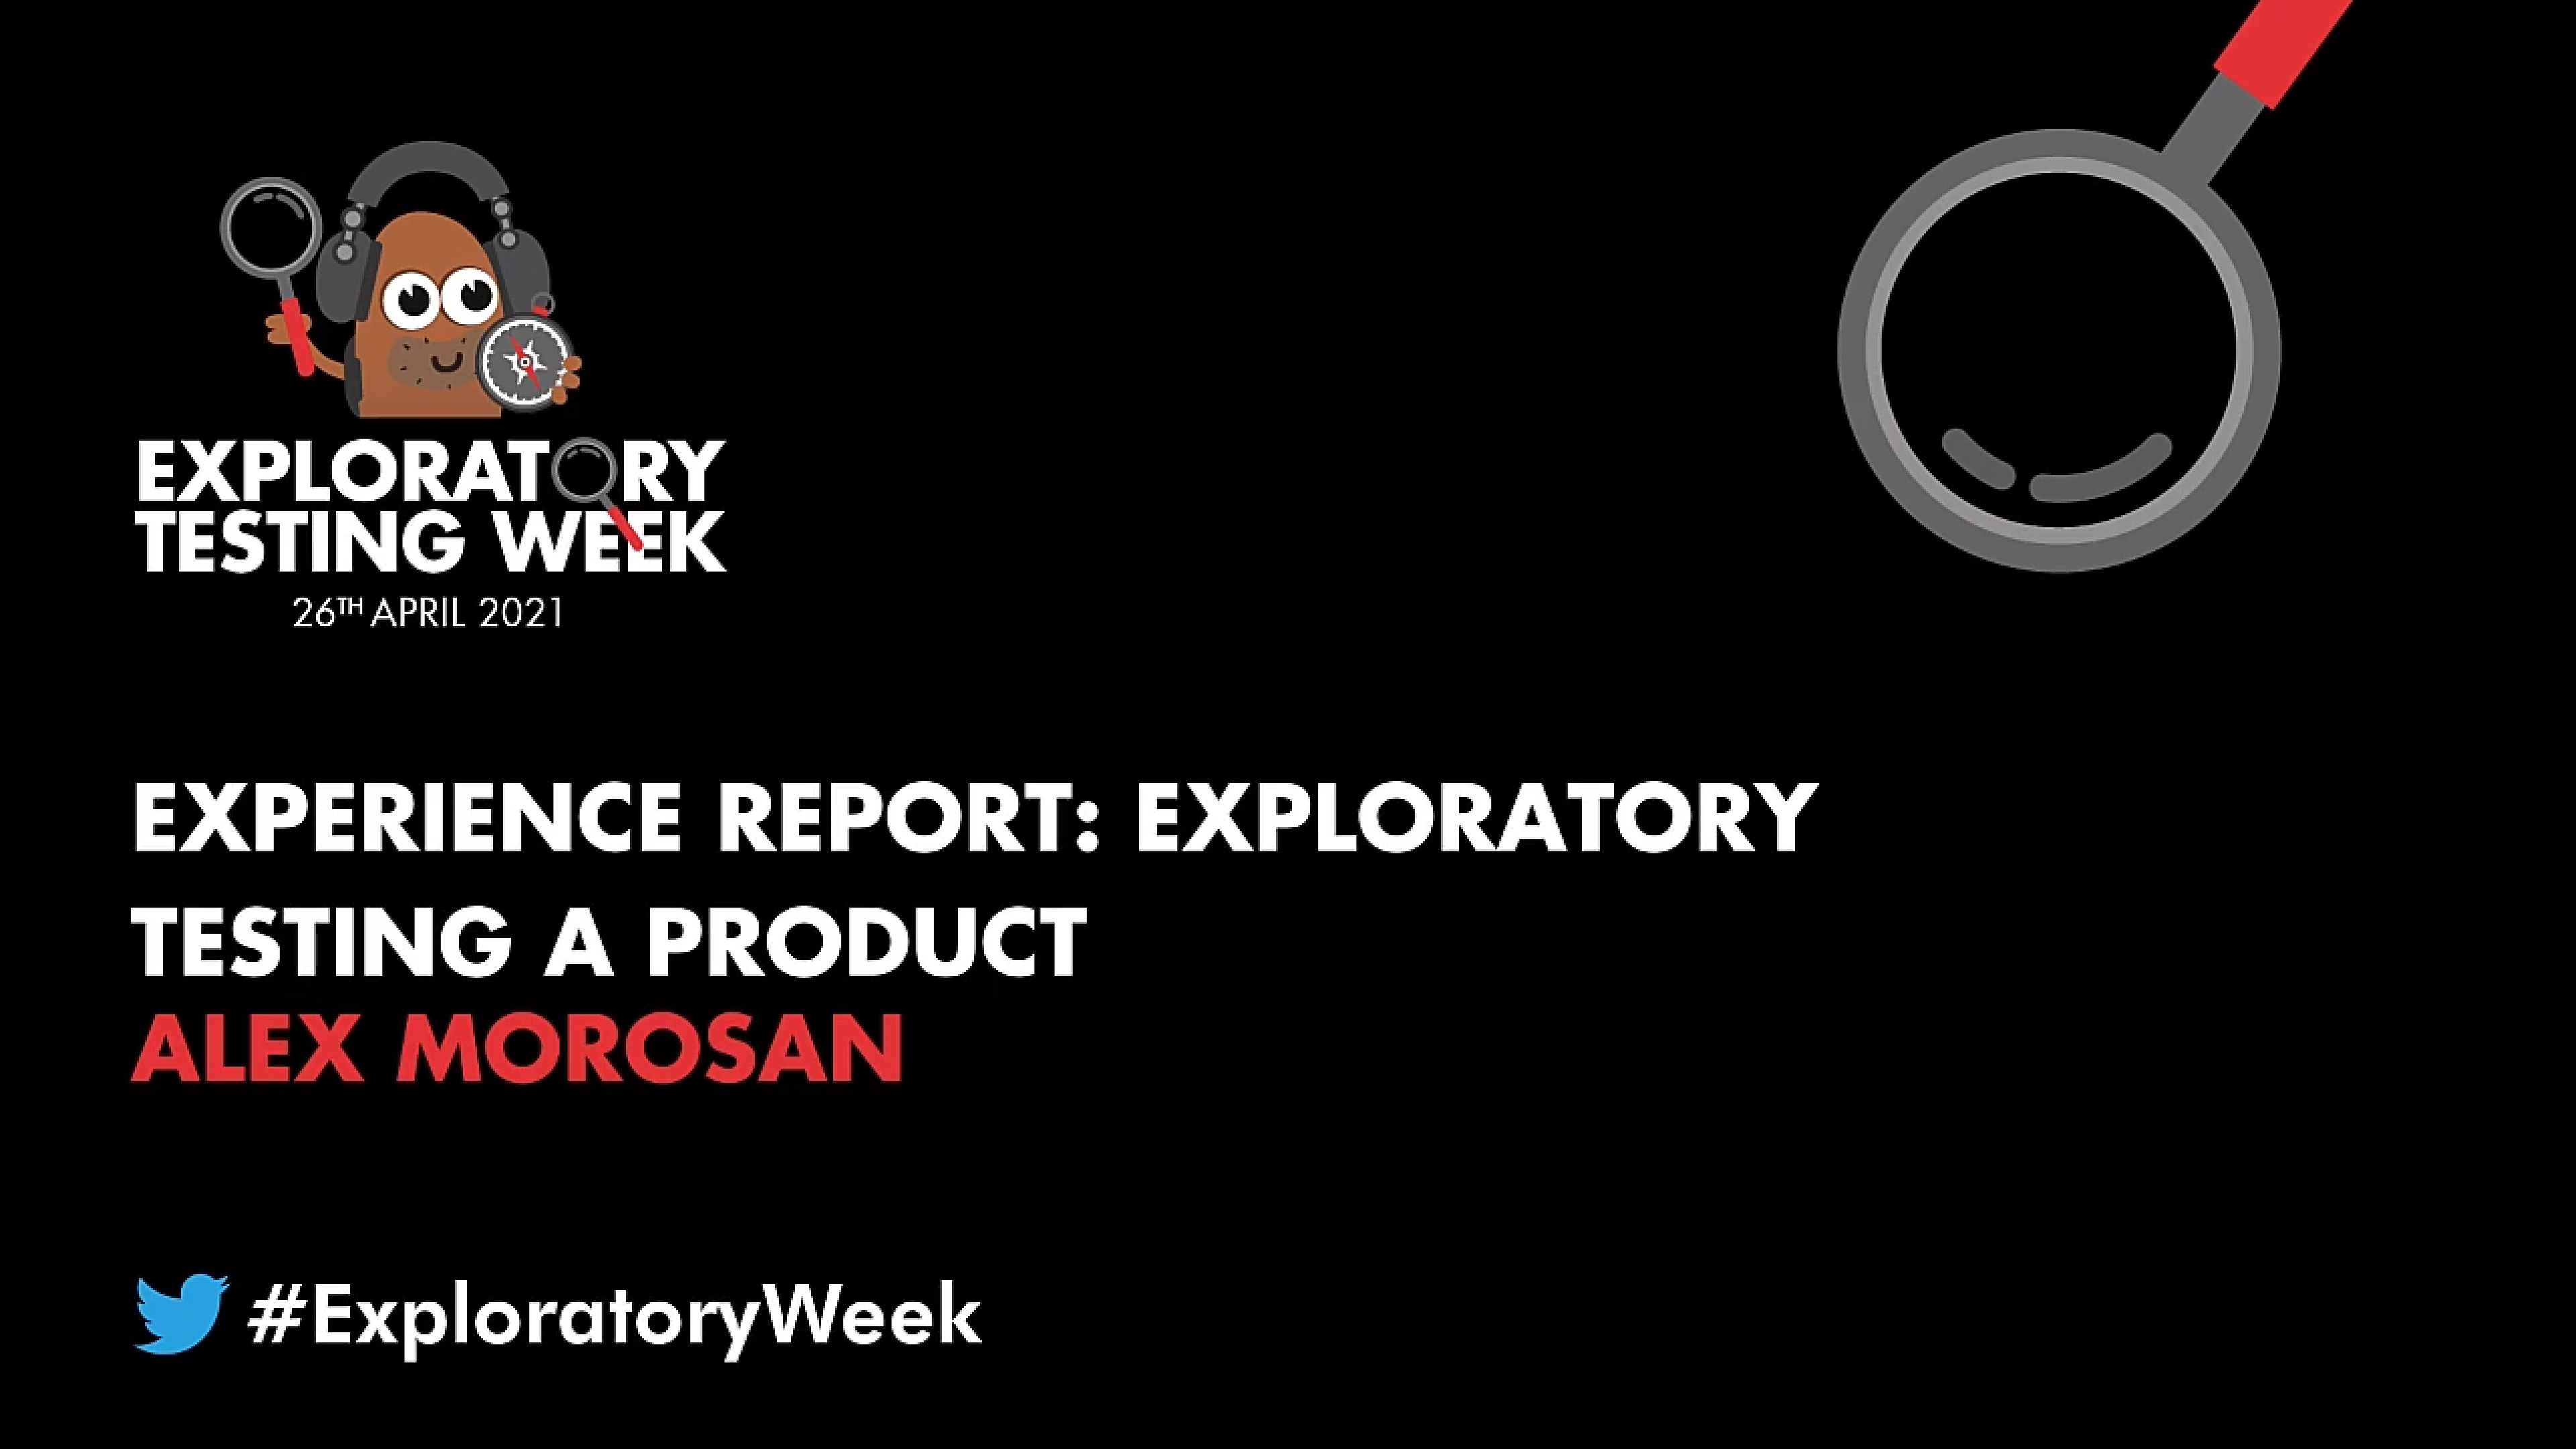 Experience Report: Exploratory Testing a Product with Alex Morosan